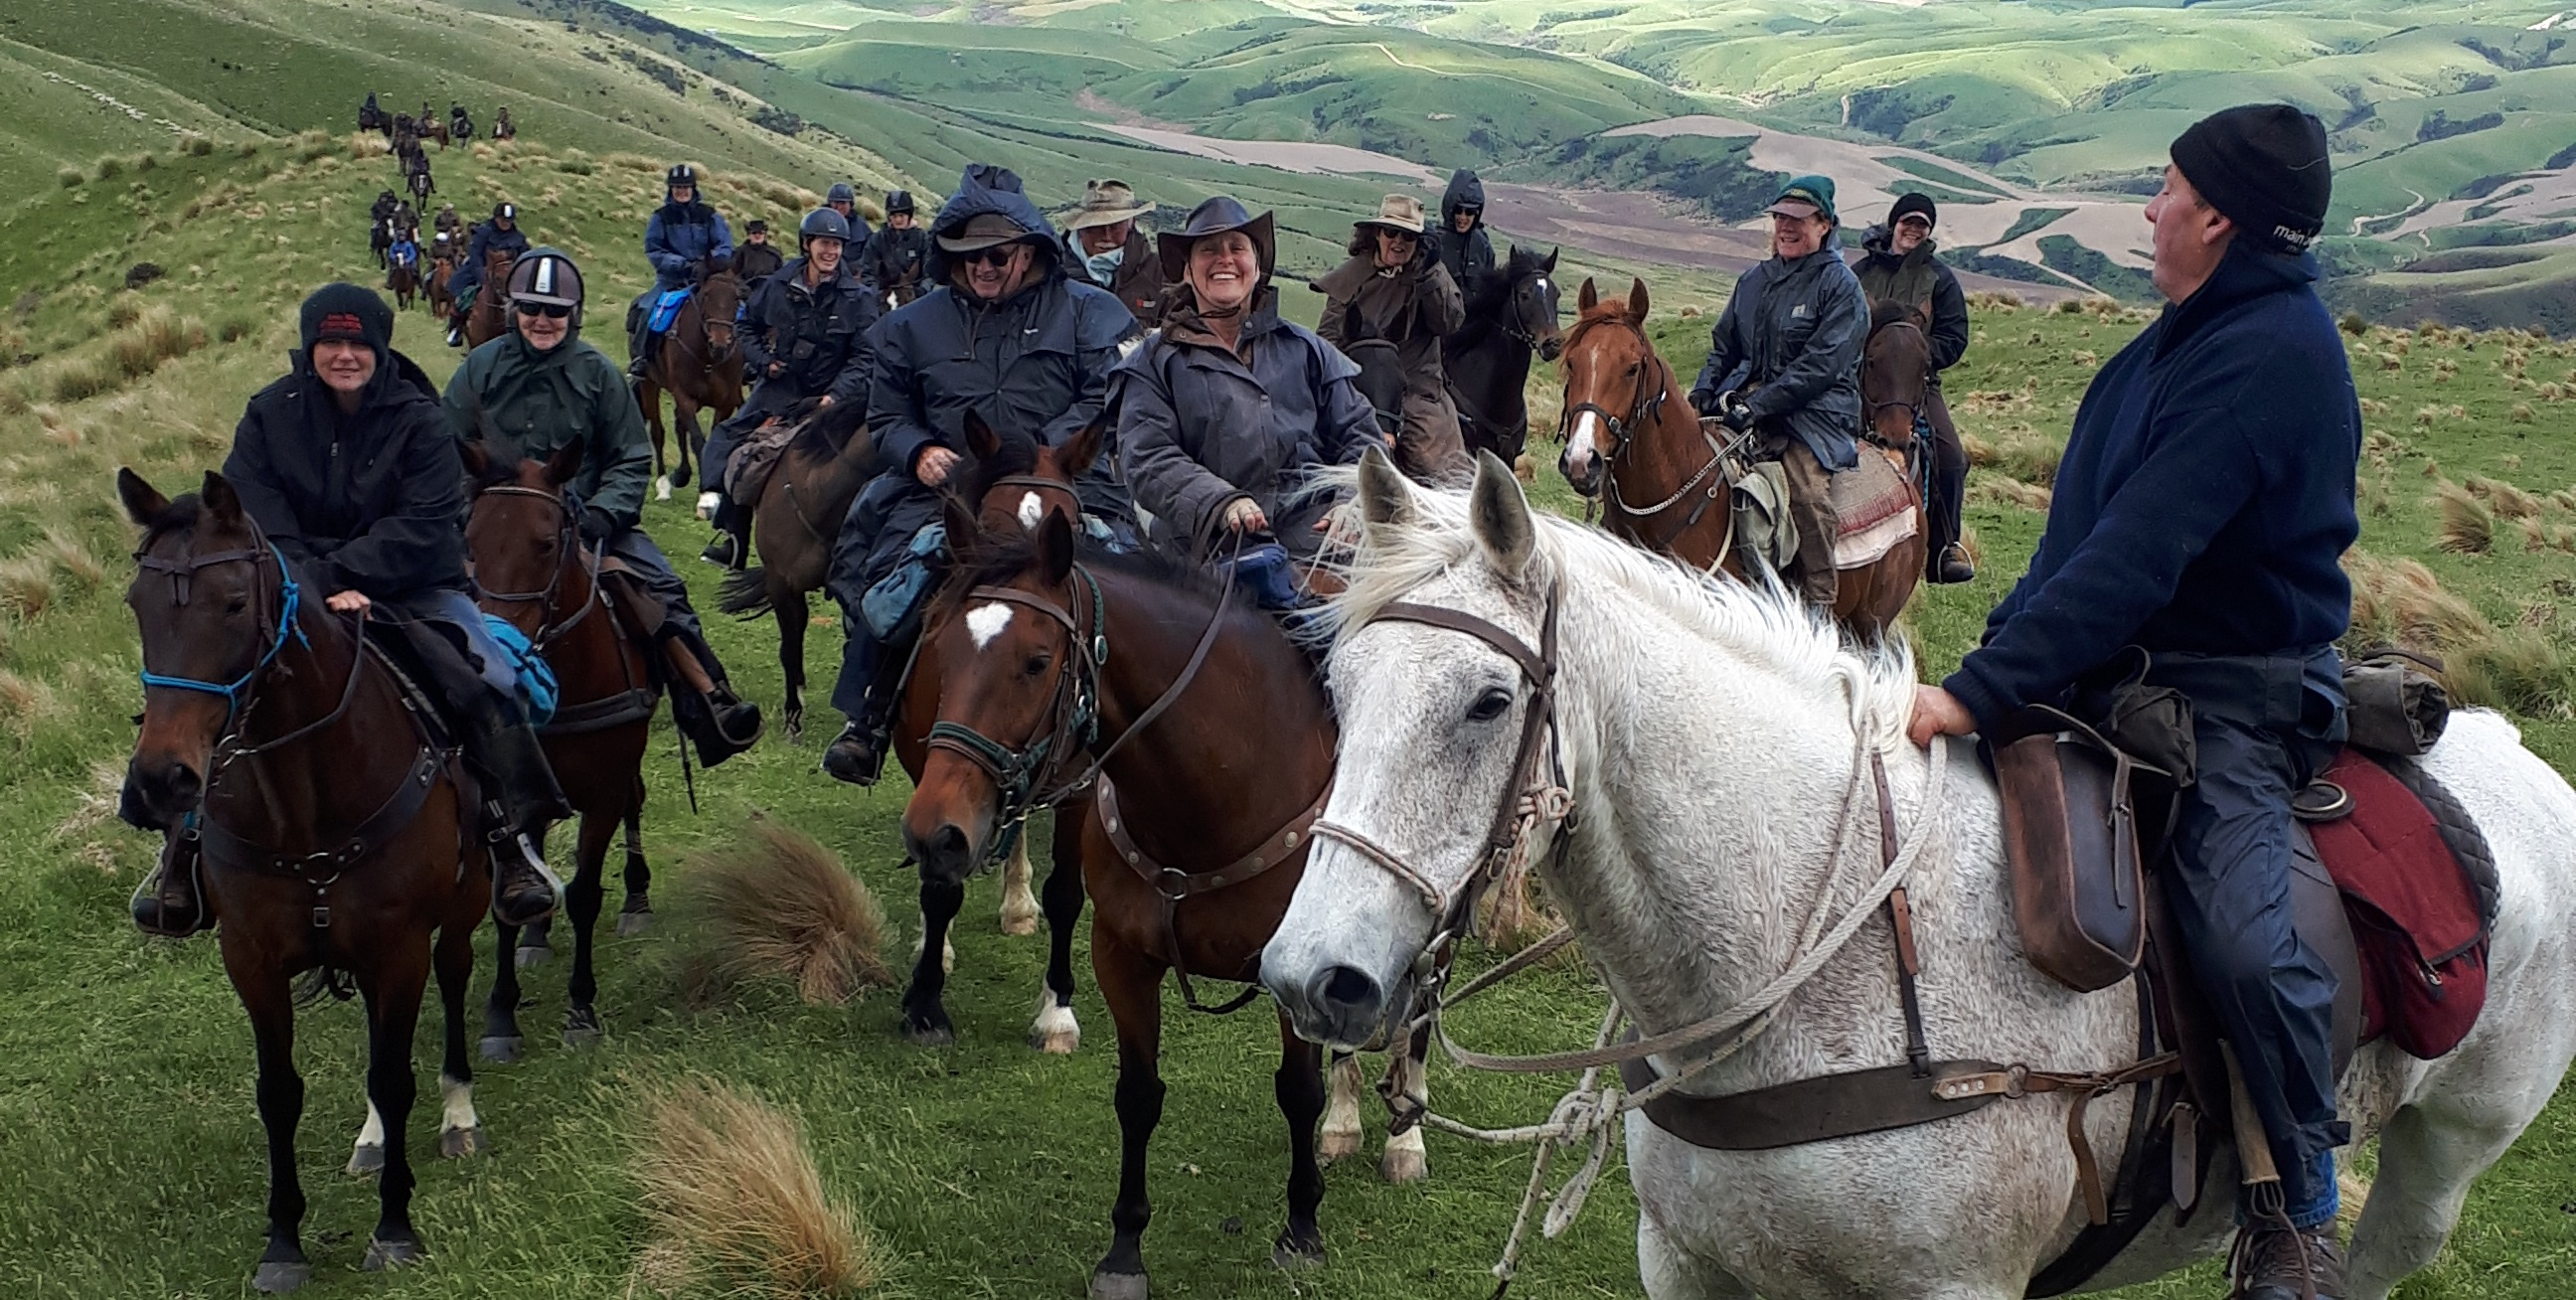 About 45 riders took part in the Greenvale Dog Trial Club's fundraising horse trek from Waikaia to Greenvale last weekend. Photo: Supplied